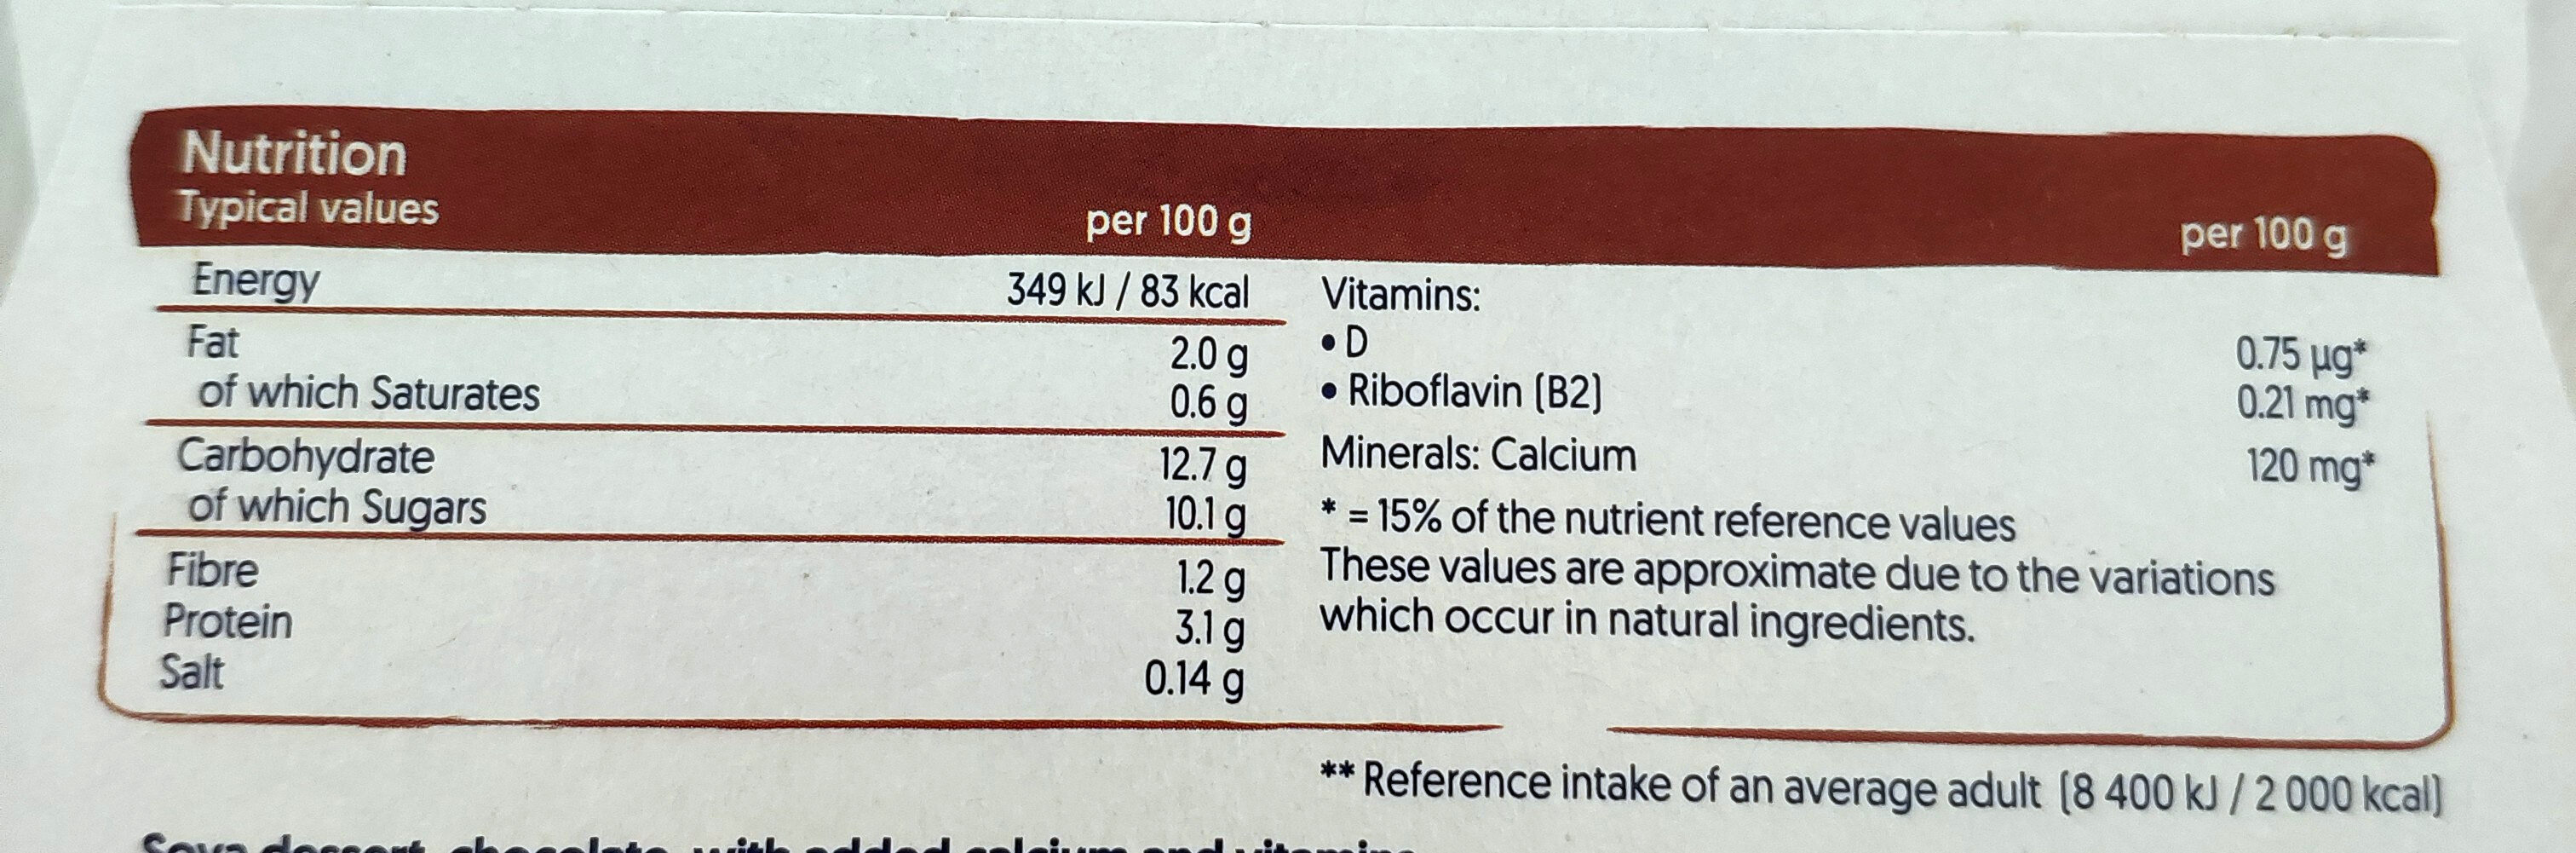 Silk & Smooth Chocolate Plant-based Dessert - Nutrition facts - en